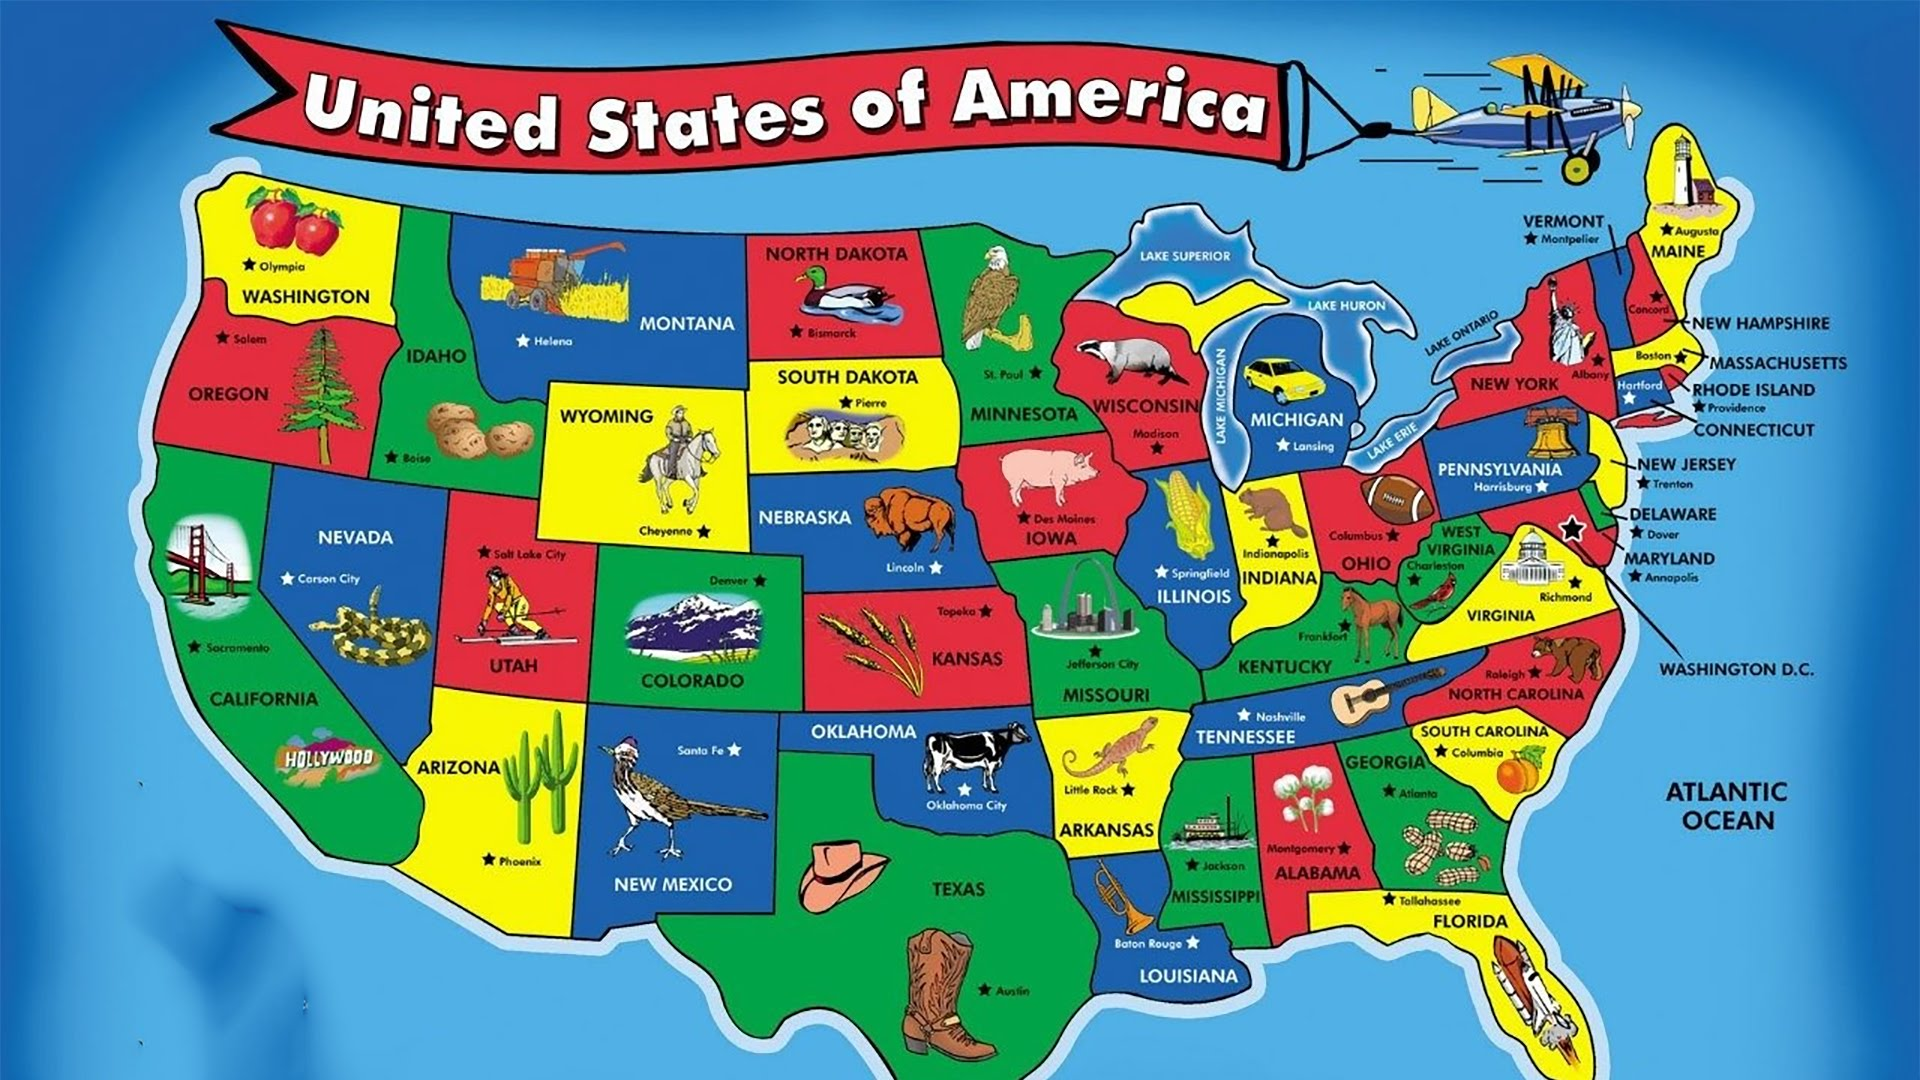 50 States-Capitals and Population of America